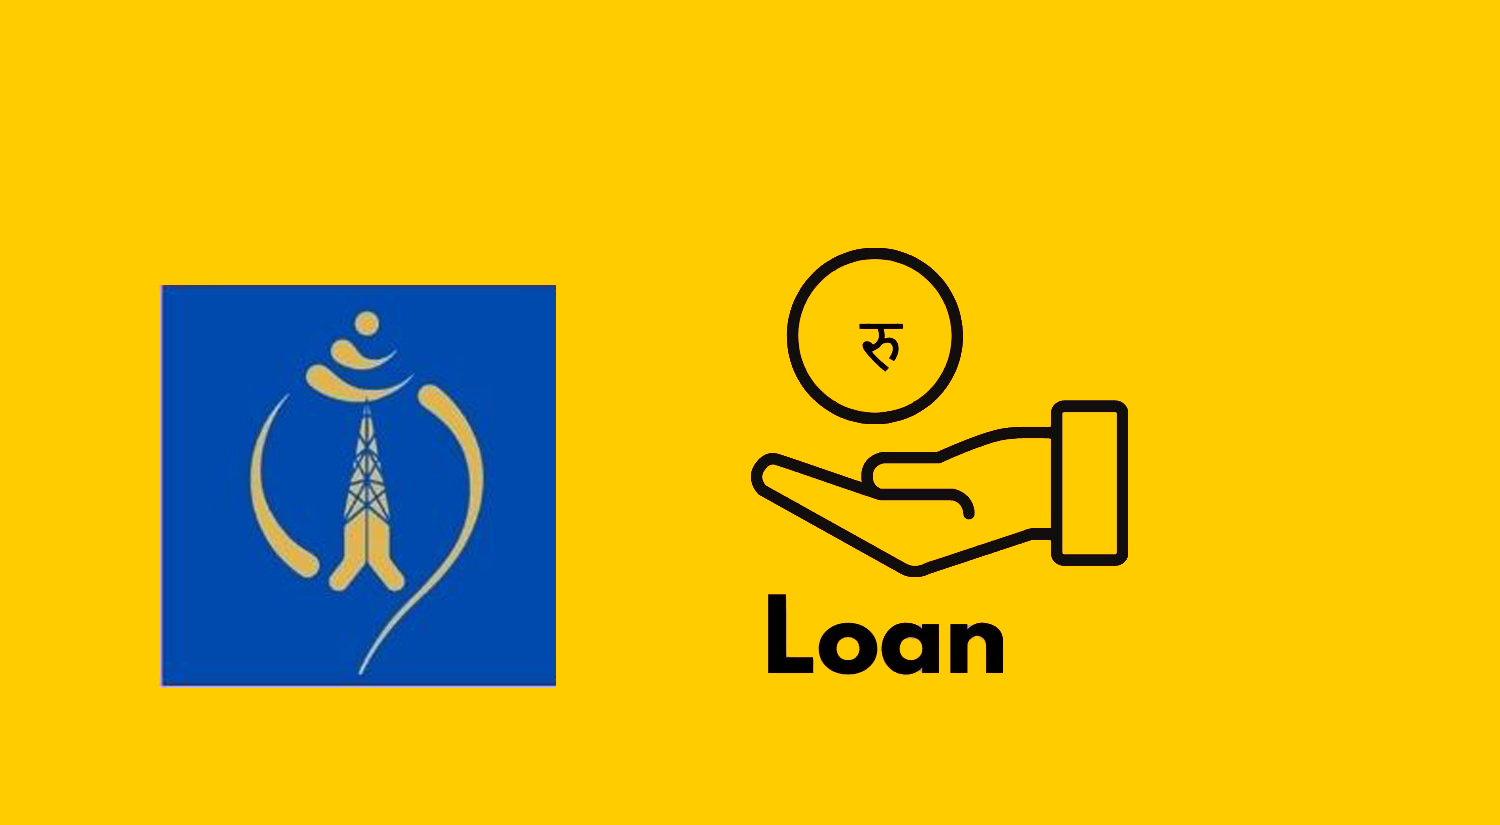 How to take loans in NTC? Know these 2 ways